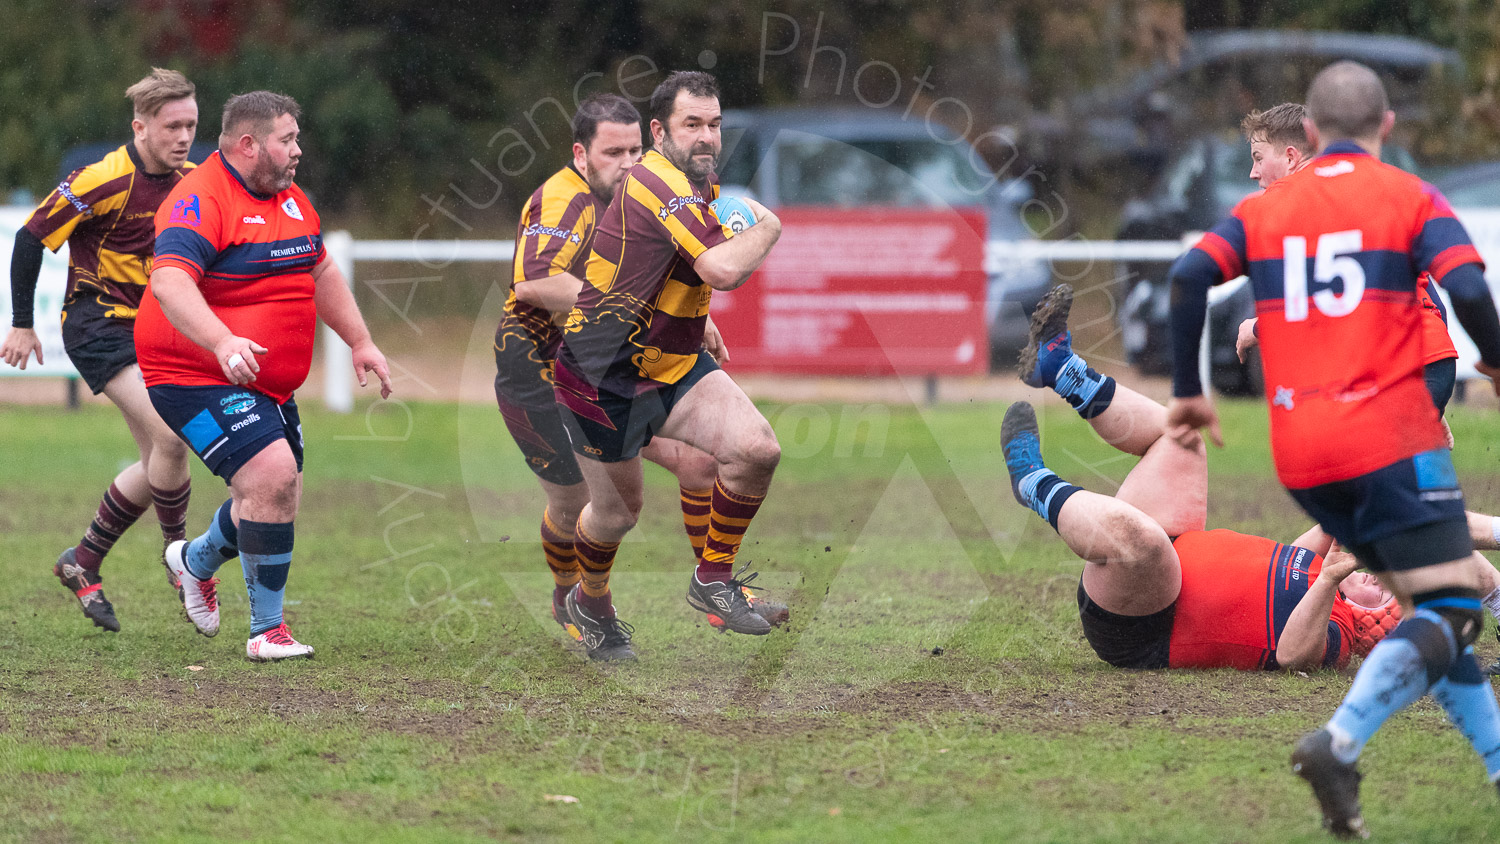 20181027 Amp Extras vs St Neots 2nd XV #2657